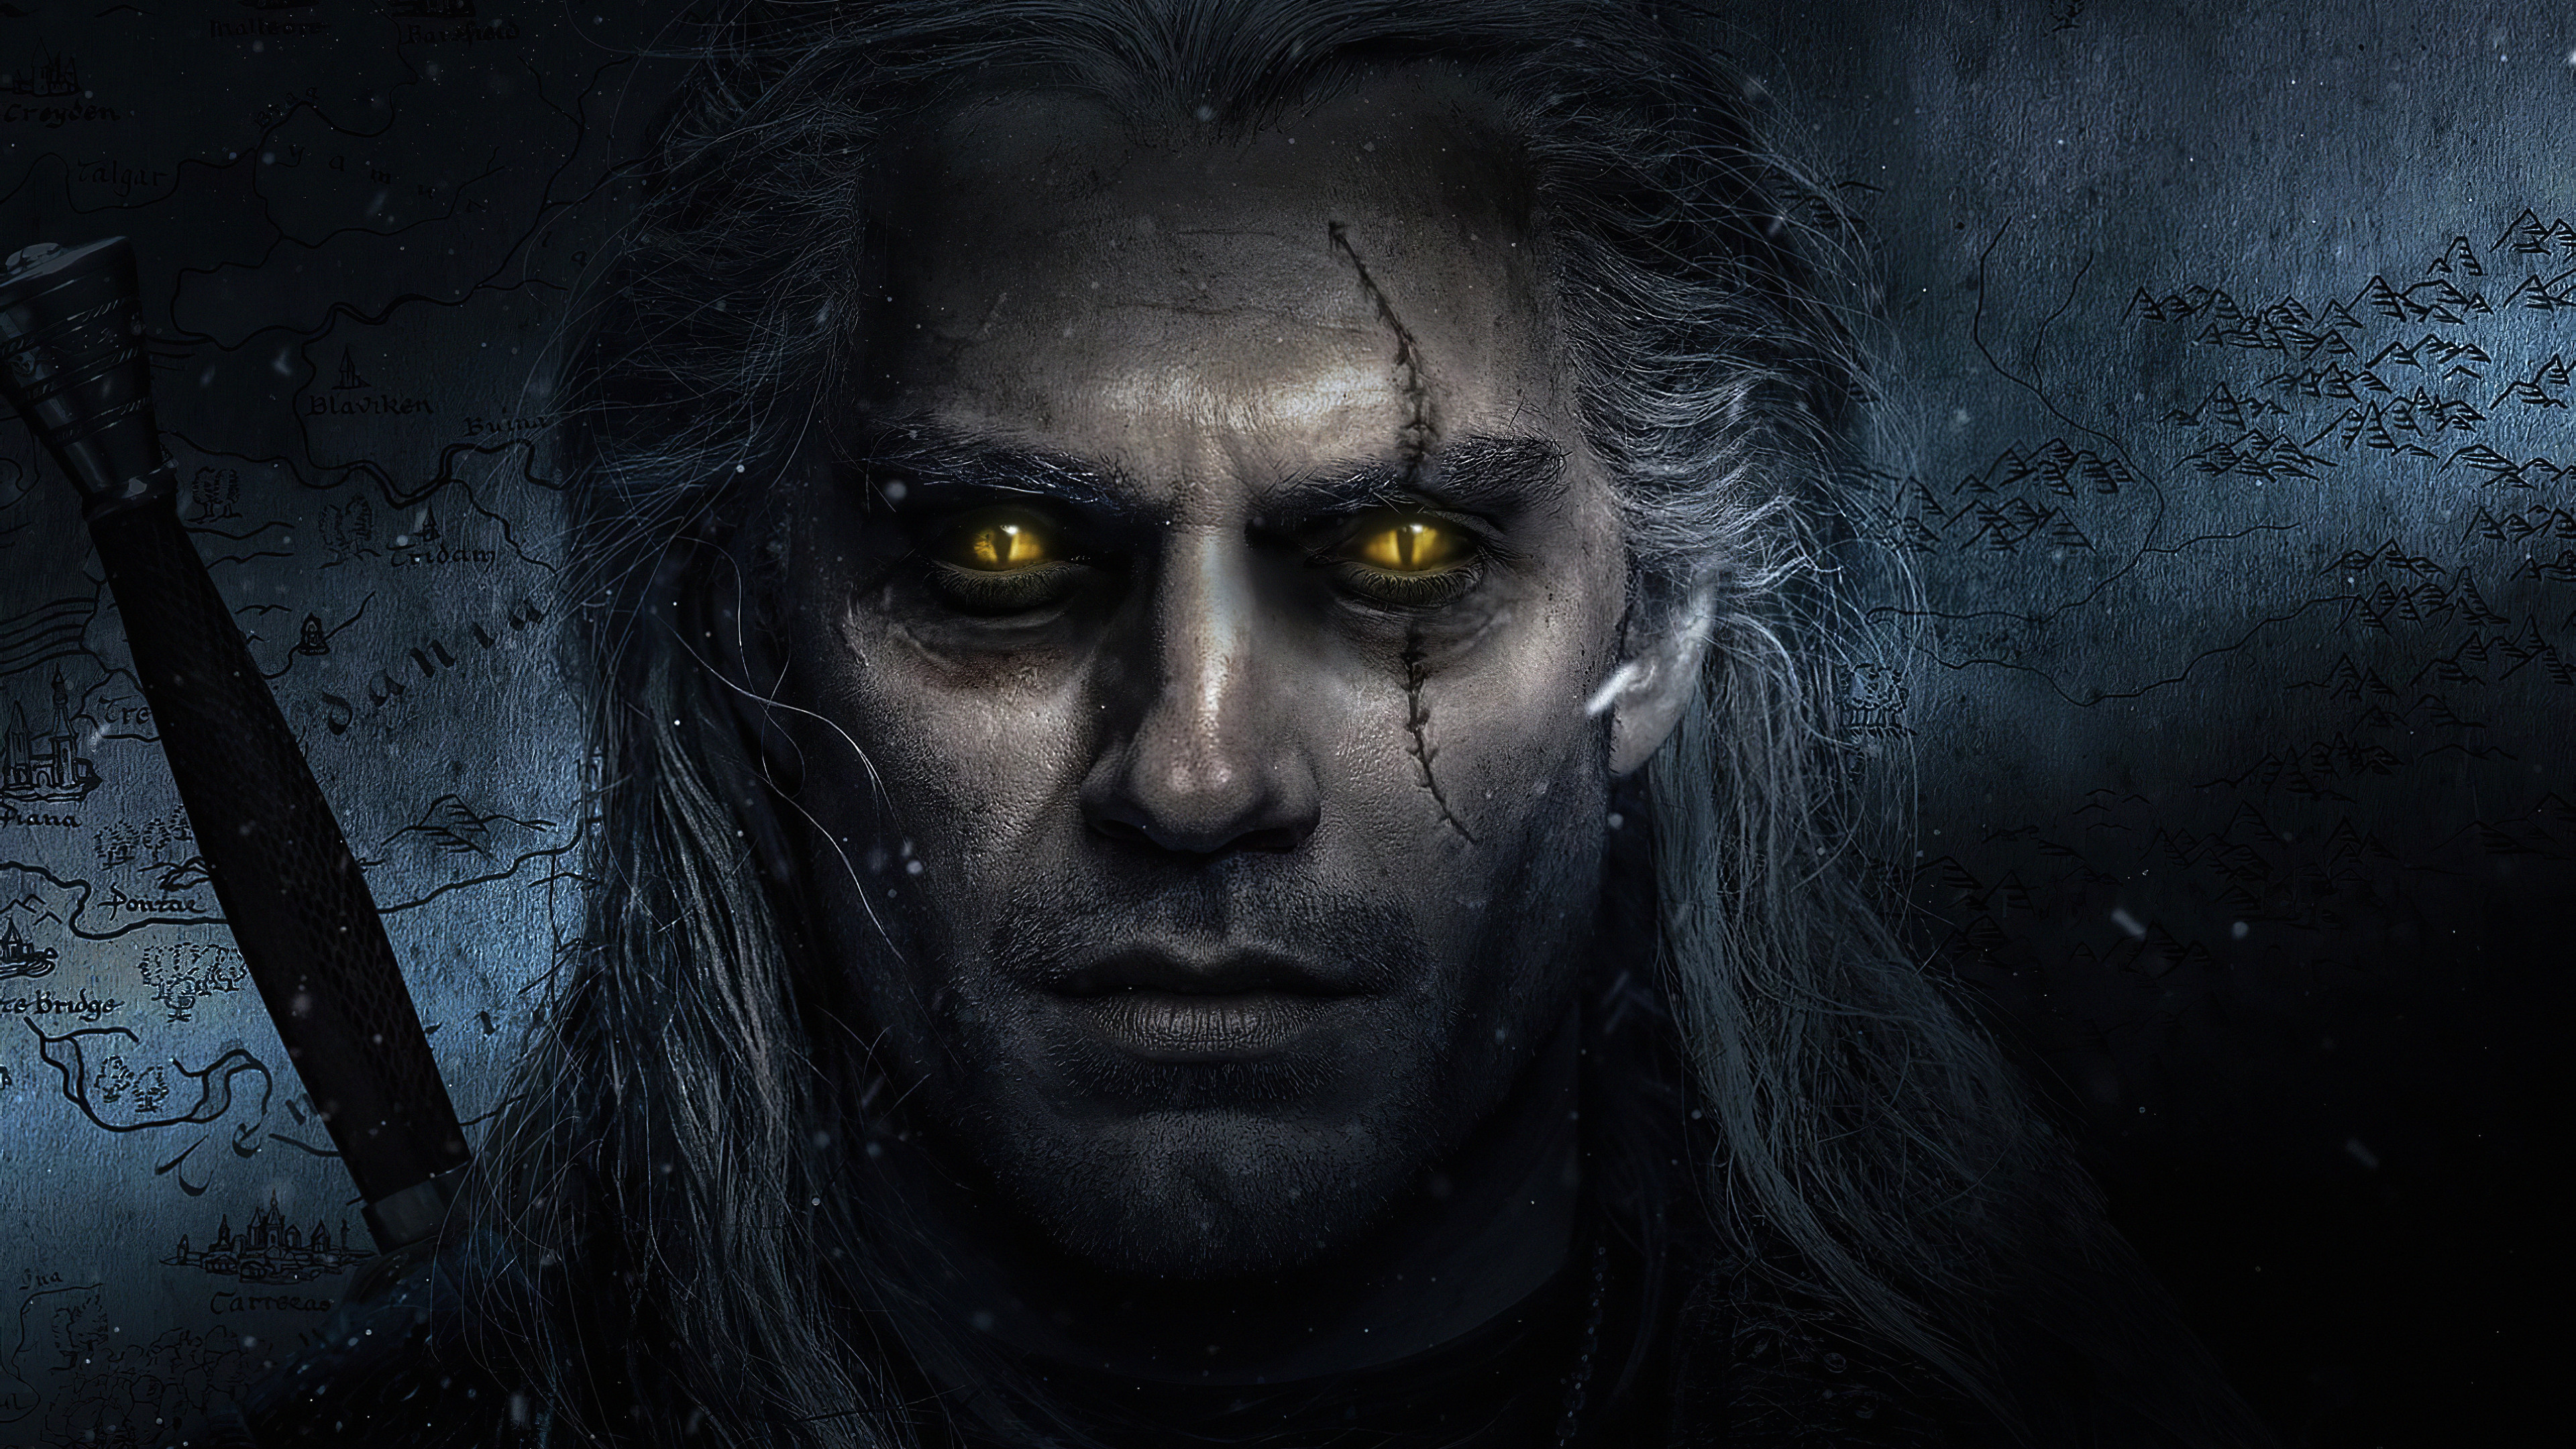 the witcher henry cavill 4k tv series 73 3840x2160 1 - The Witcher Henry Cavill Art - The Witcher wallpaper hd 4k, The Witcher Henry wallpaper 4k, The Witcher 4k wallpaper